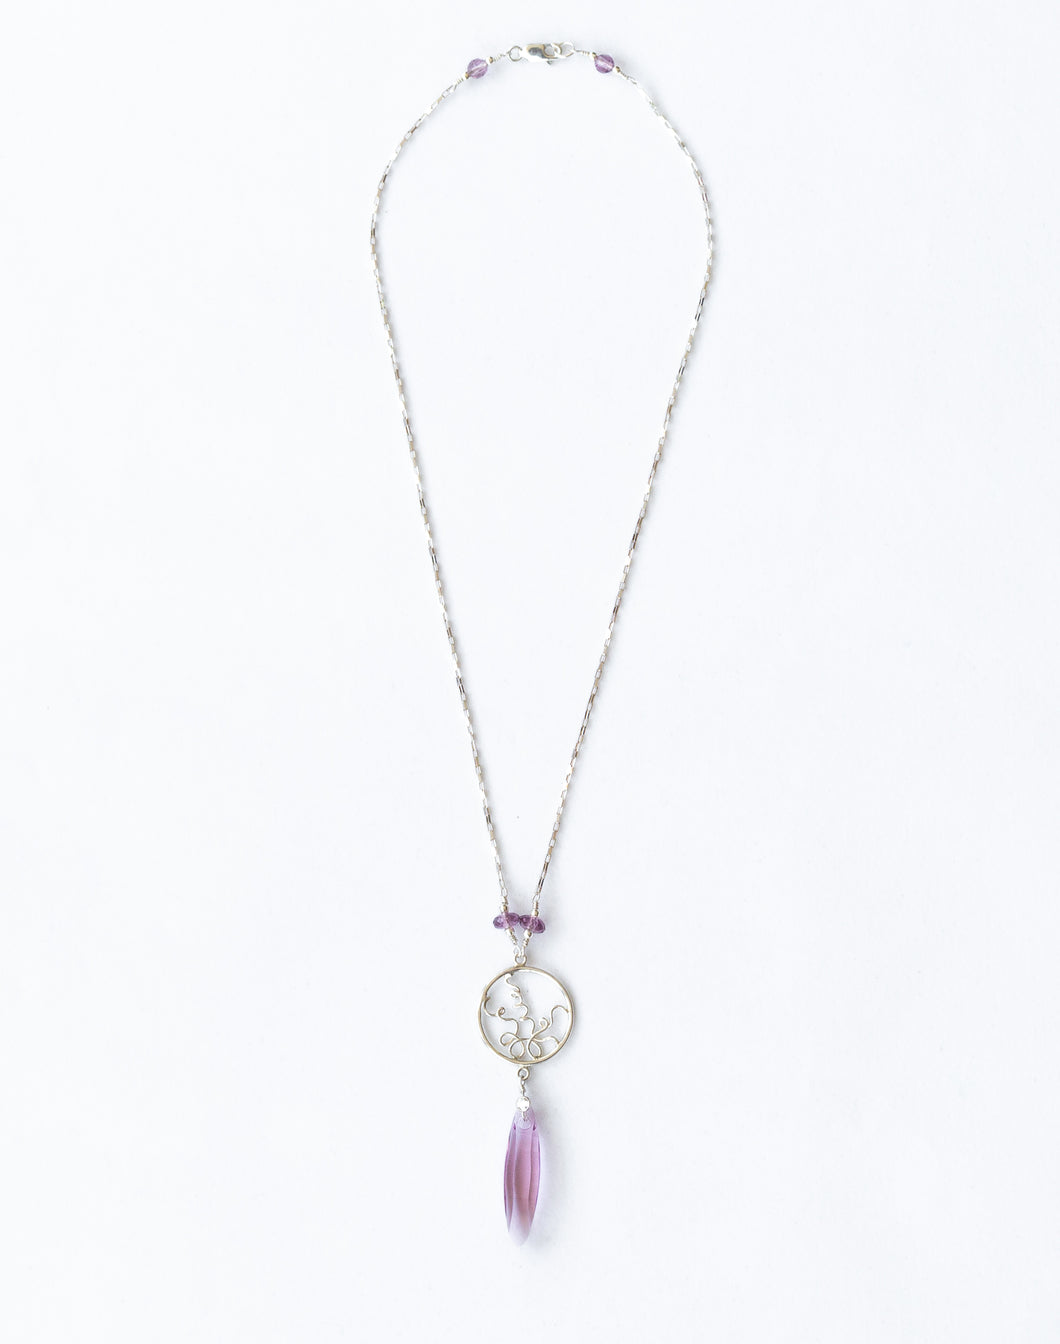 Sterling Silver Necklace with Amethyst and Swarovski Crystal